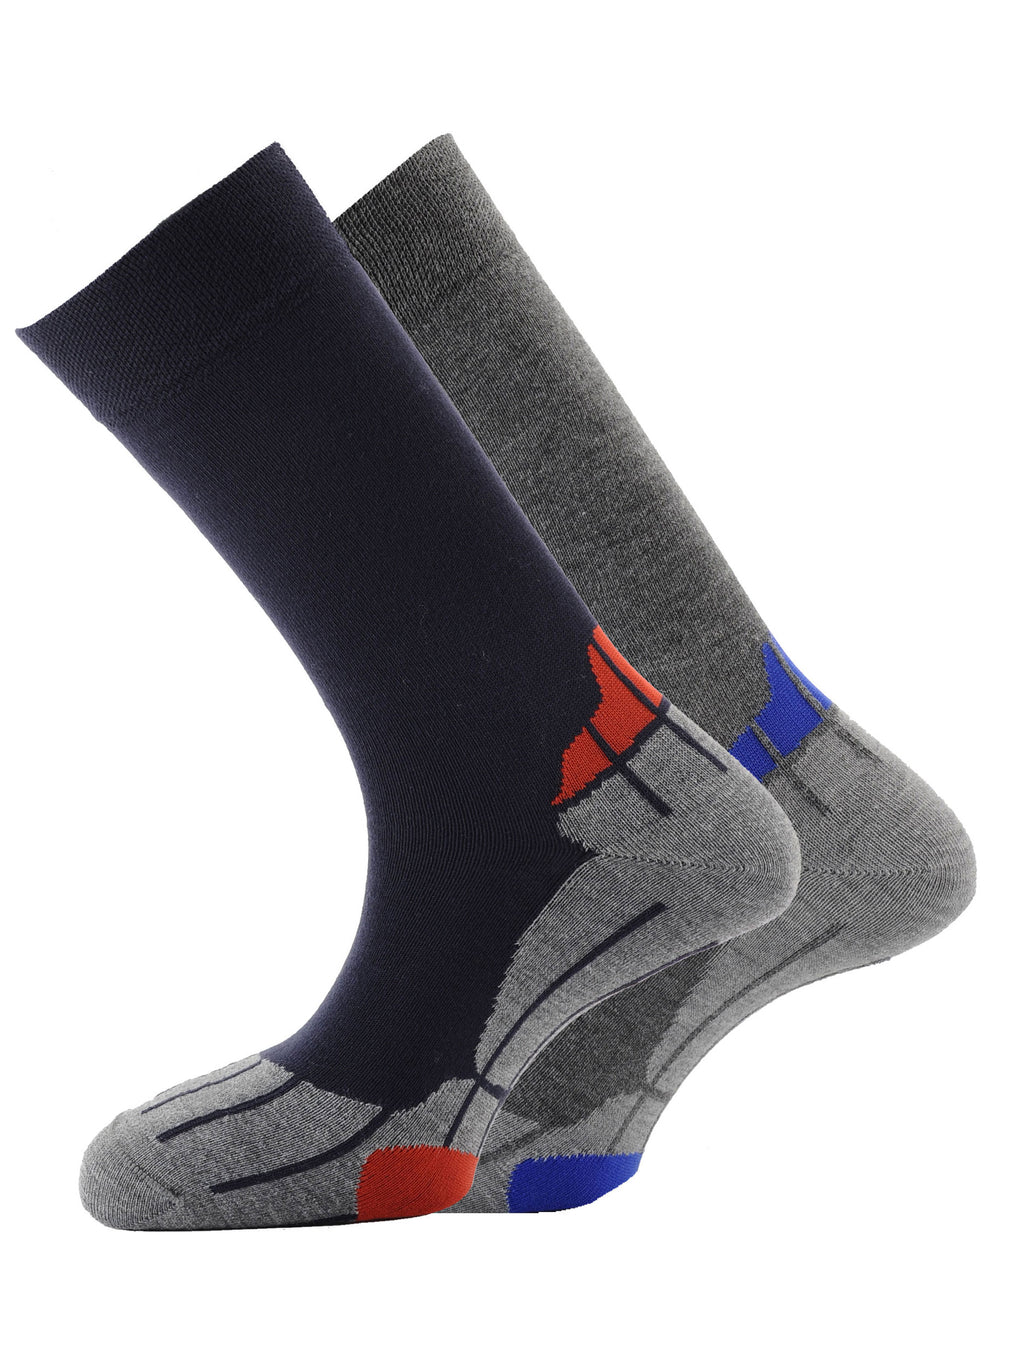 Coolmax Lining 2pk Socks